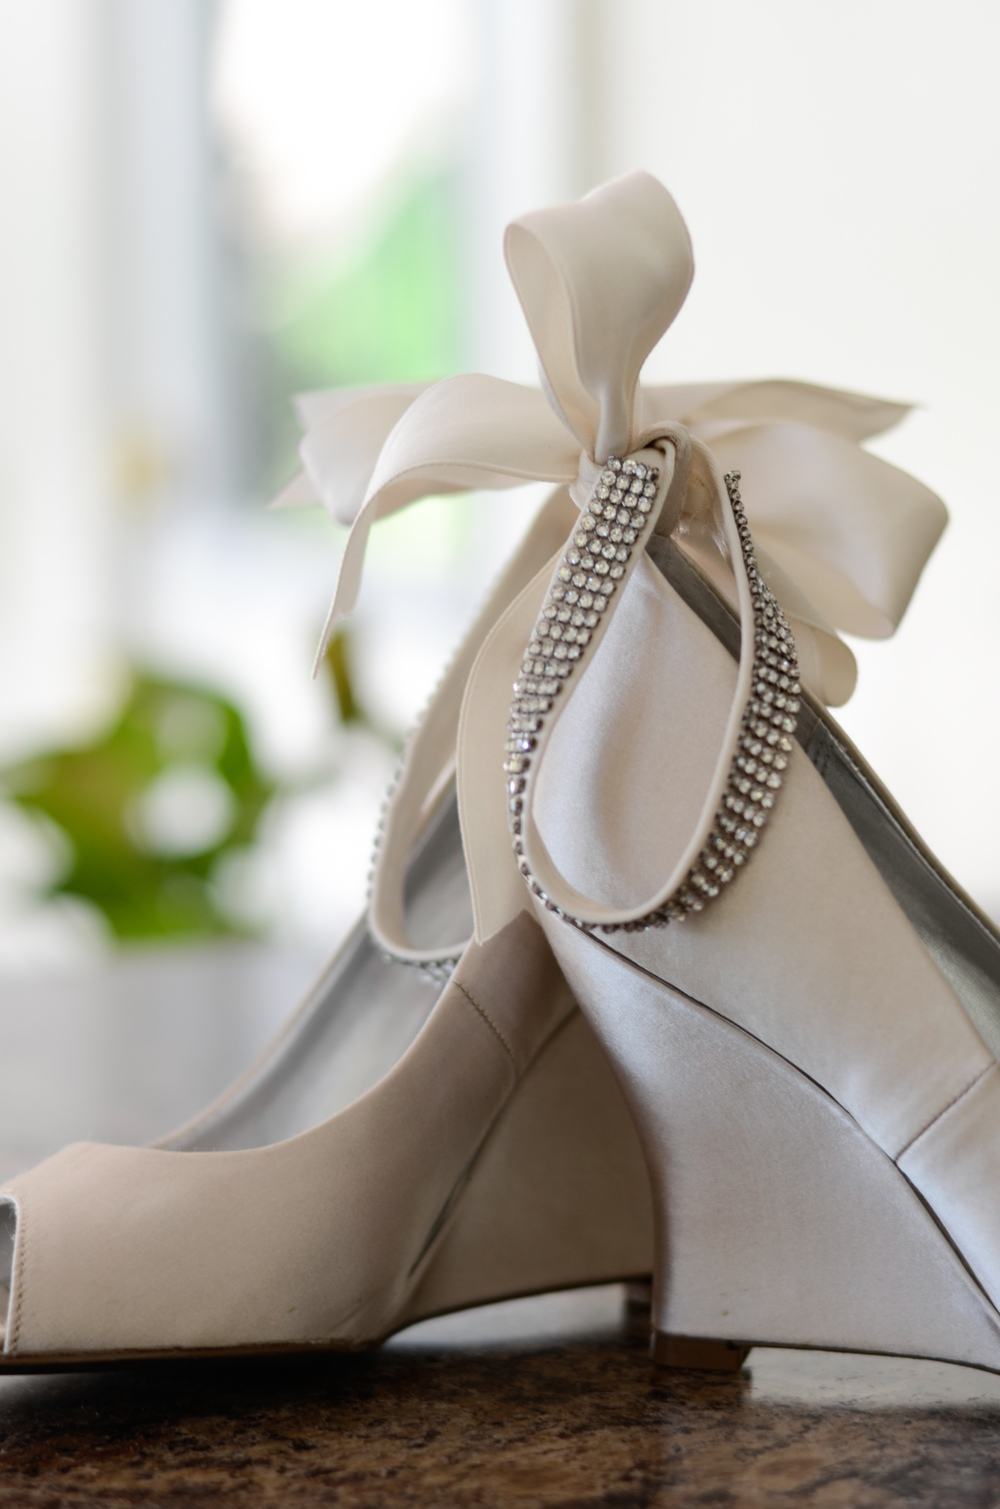 Satin bowed and rhinestone ivory wedge heels were the shoe of choice for Anna.